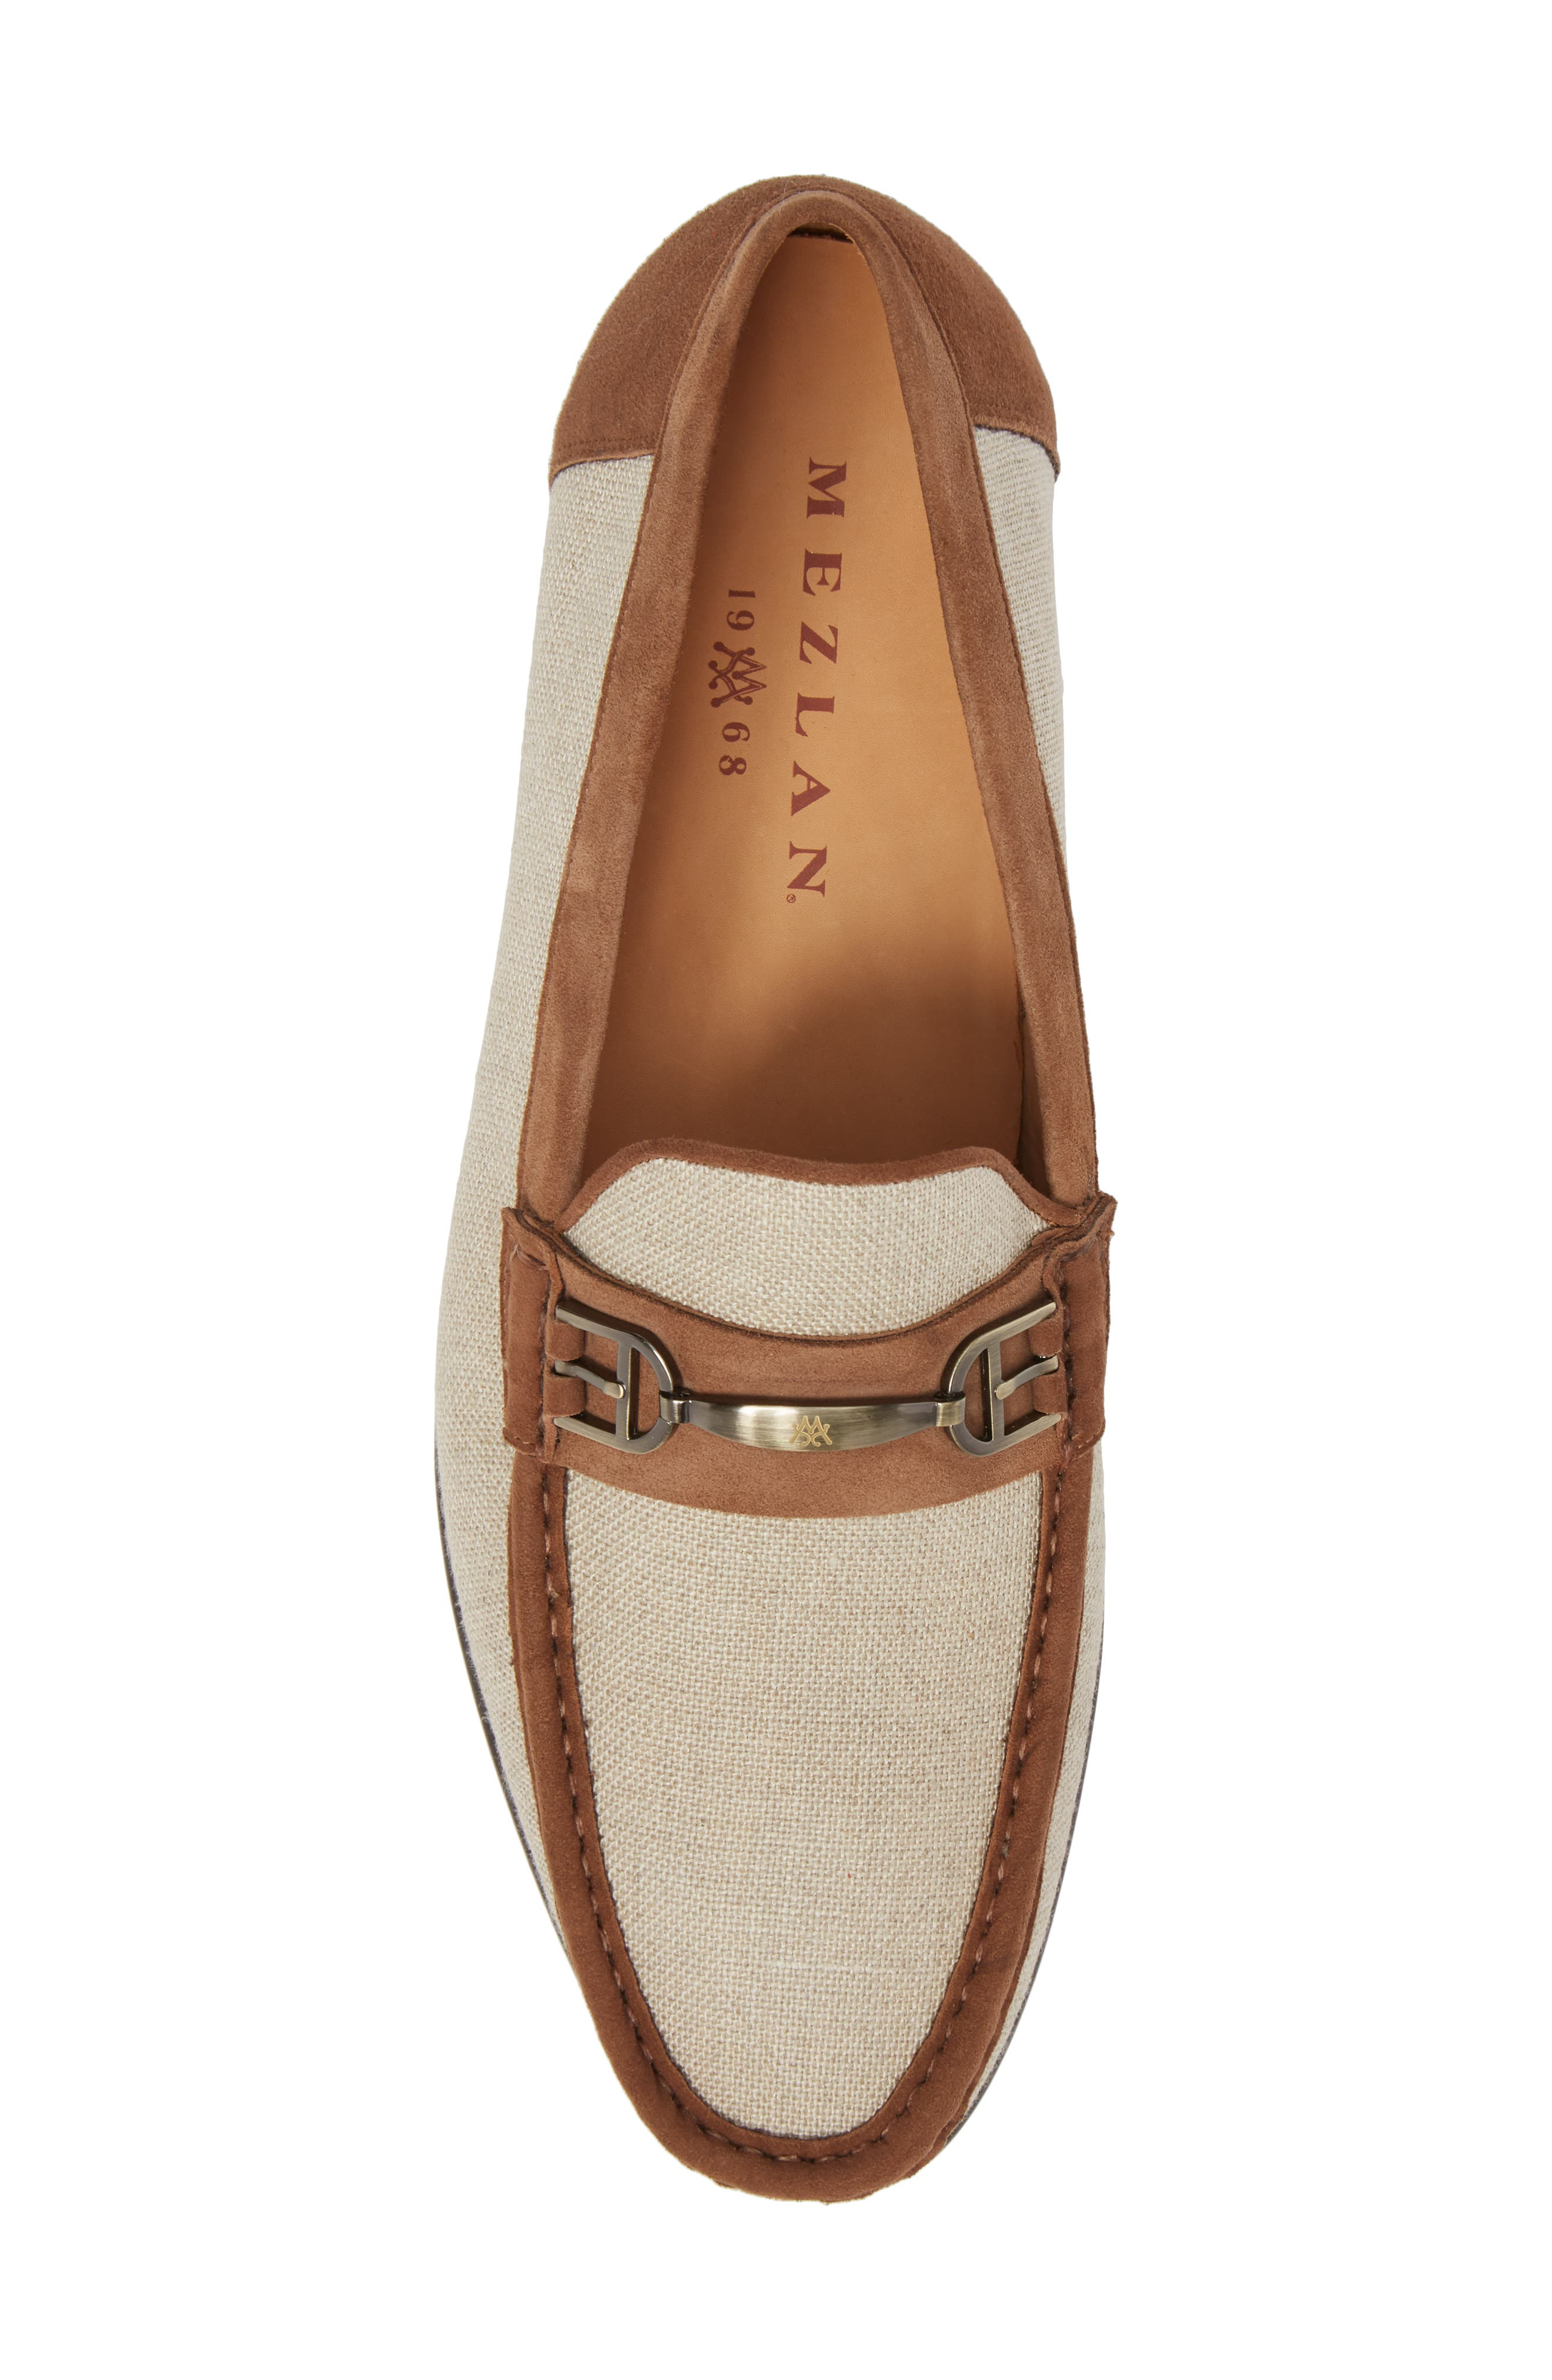 Jason Two-Tone Bit Loafer,                             Alternate thumbnail 5, color,                             BONE/ COGNAC LINEN/ SUEDE